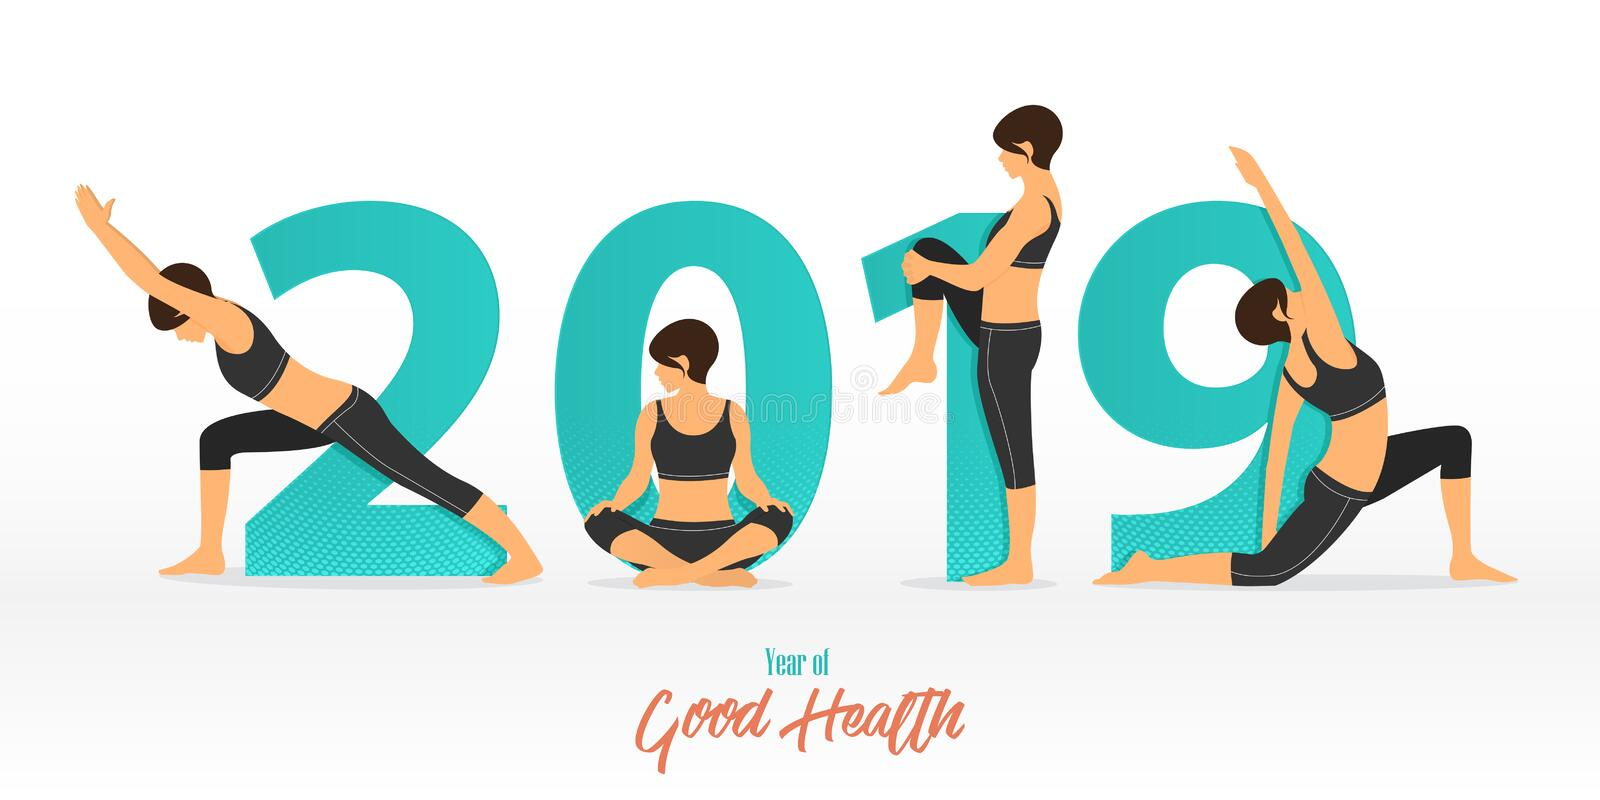 Happy New Year 2019 banner with yoga poses. Year of good health. Banner design template for New Year decoration in Yoga Concept. Vector illustration royalty free illustration